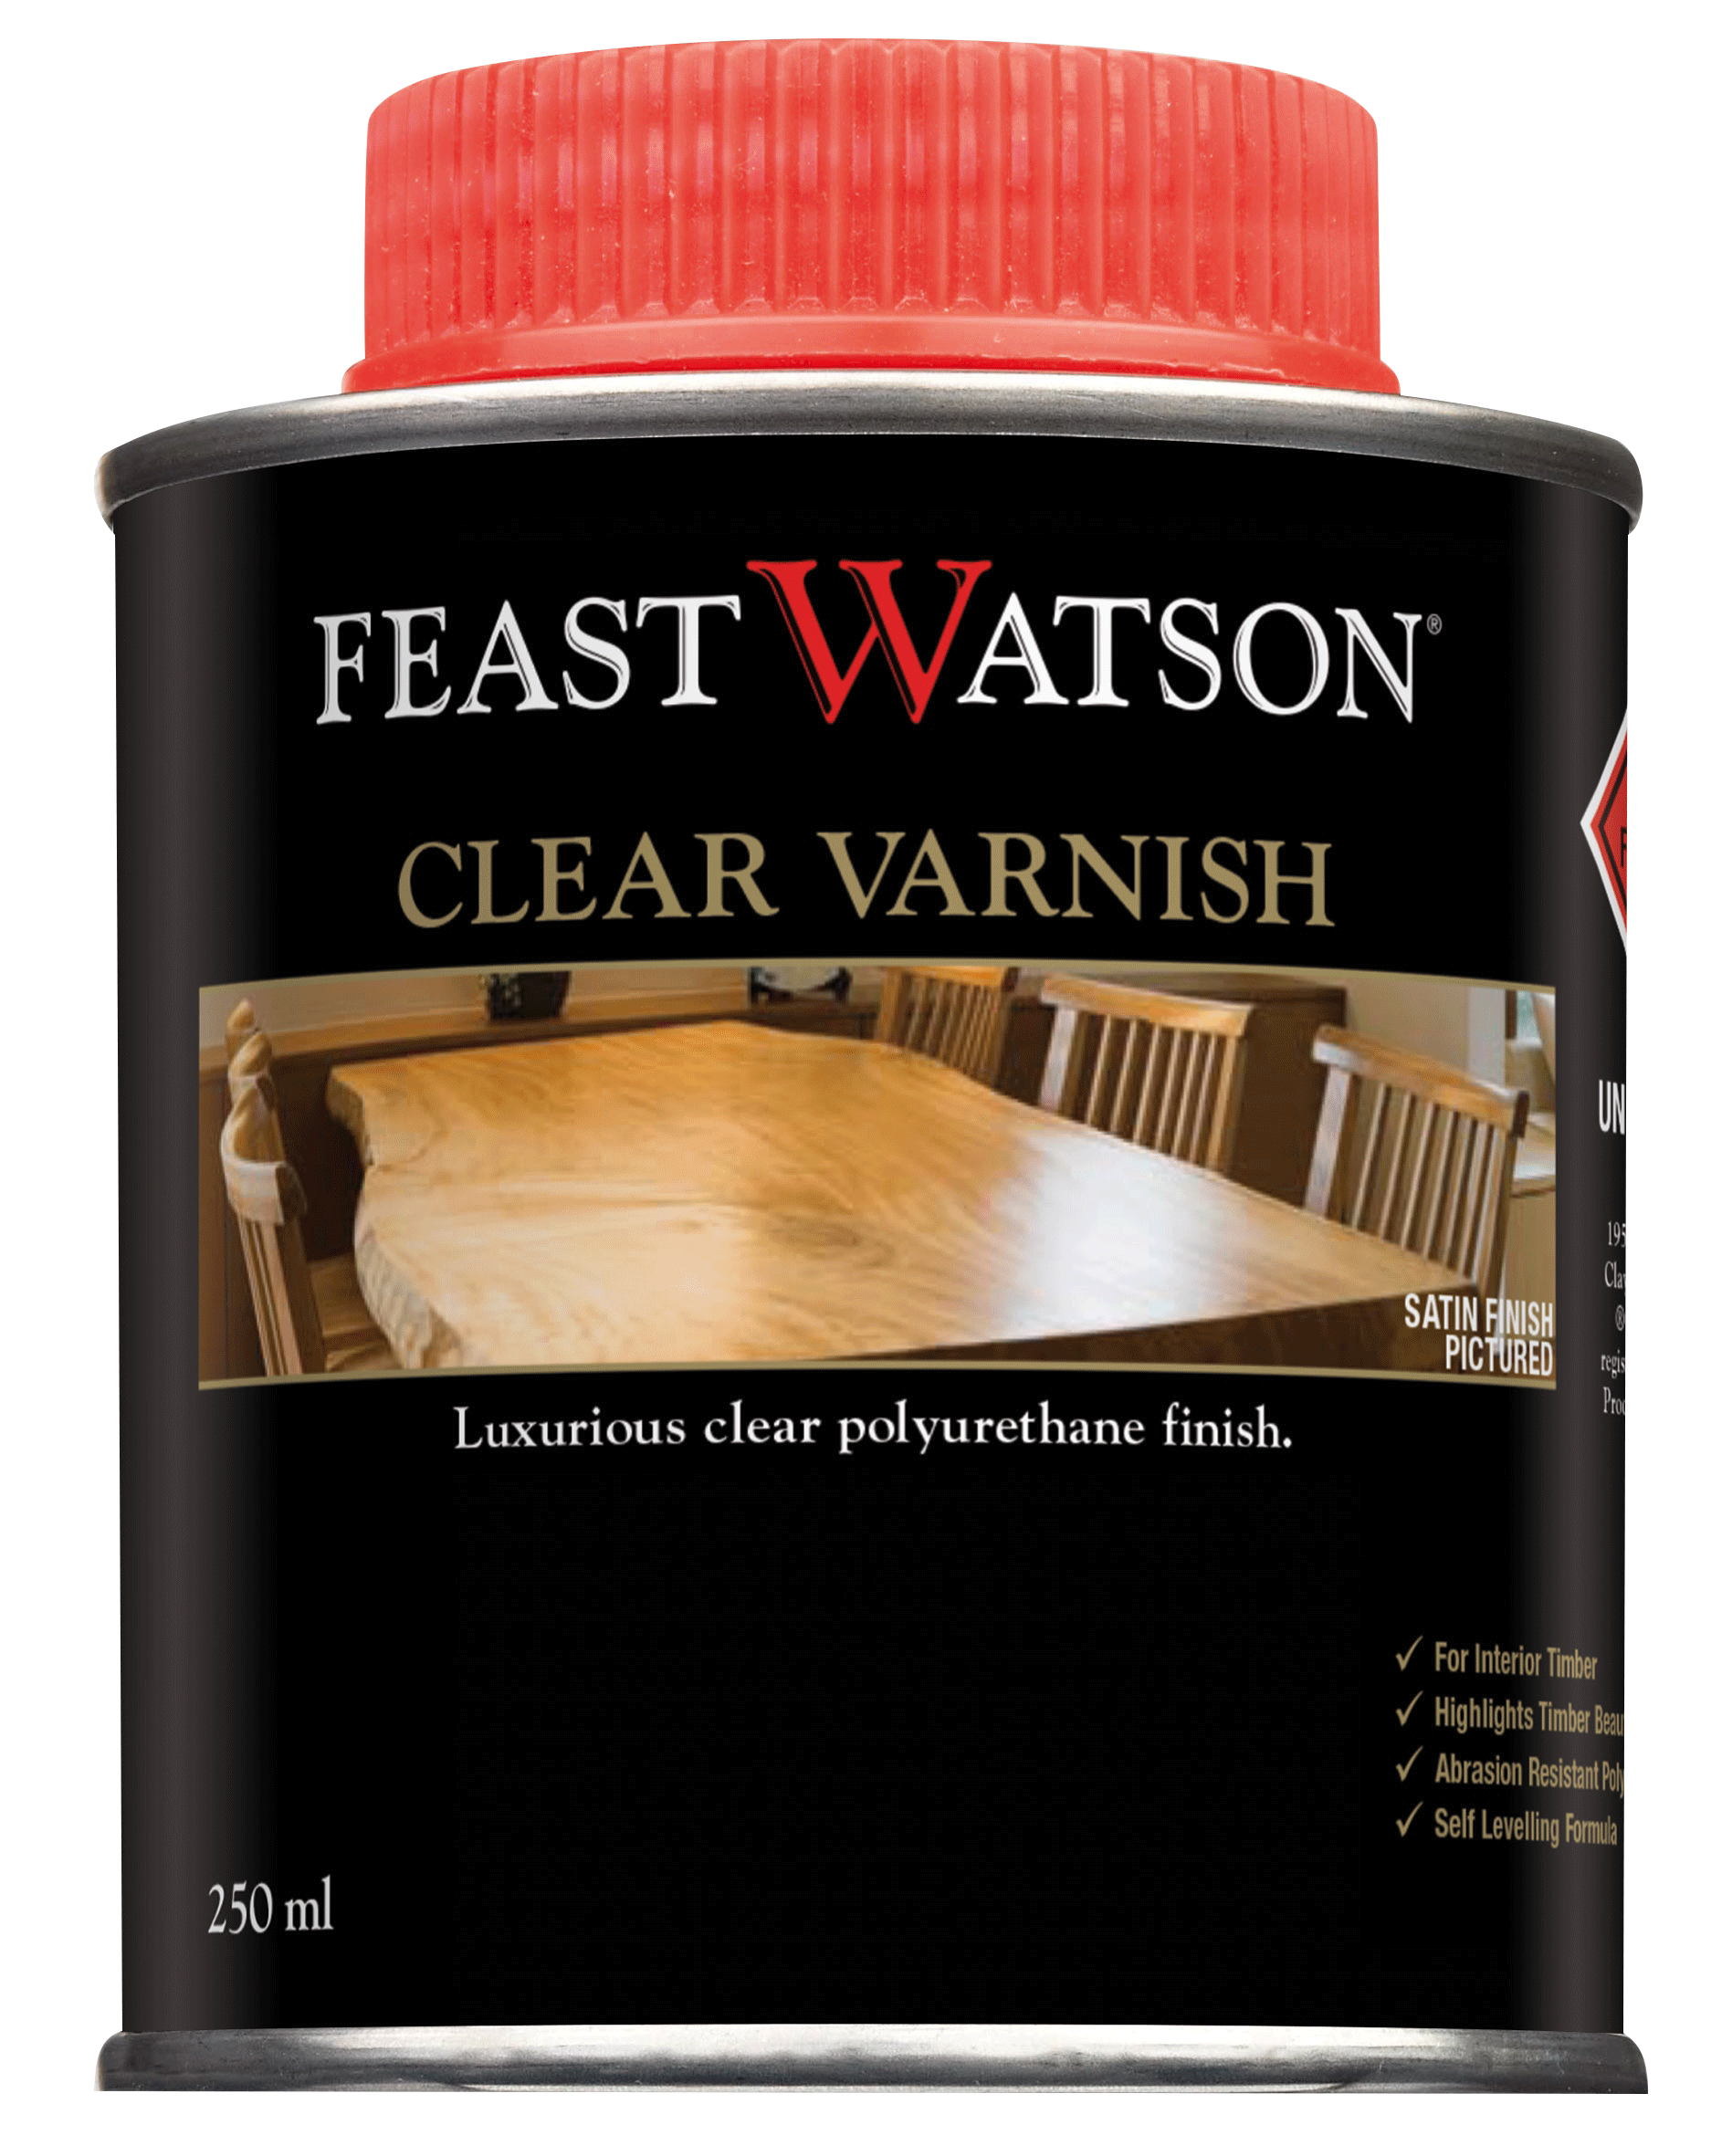 Clear Varnish Feast Watson Products